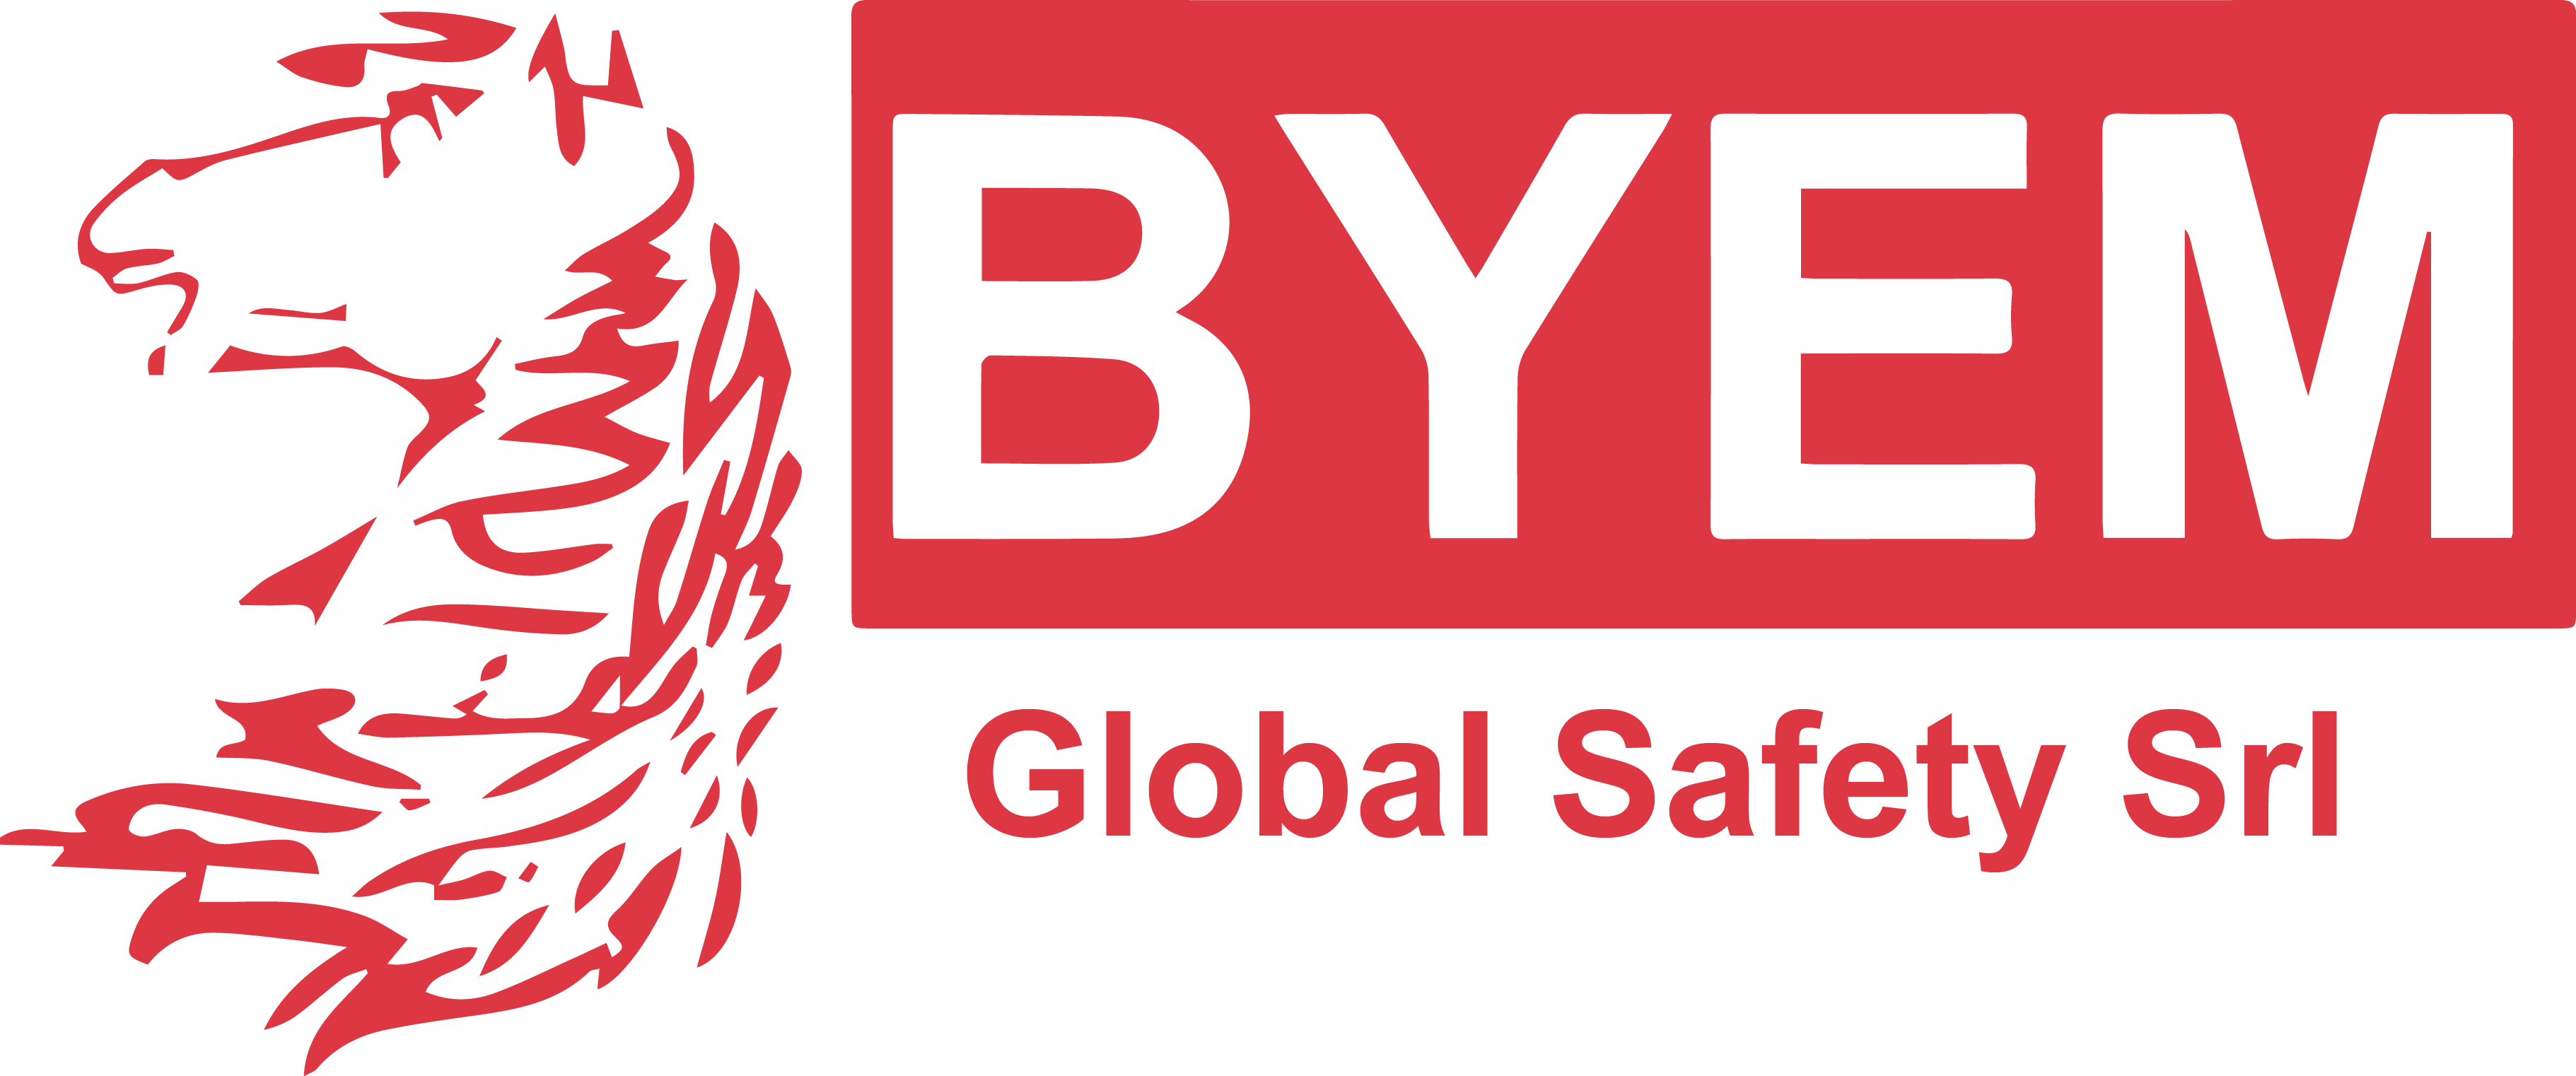 BYEM Global Safety